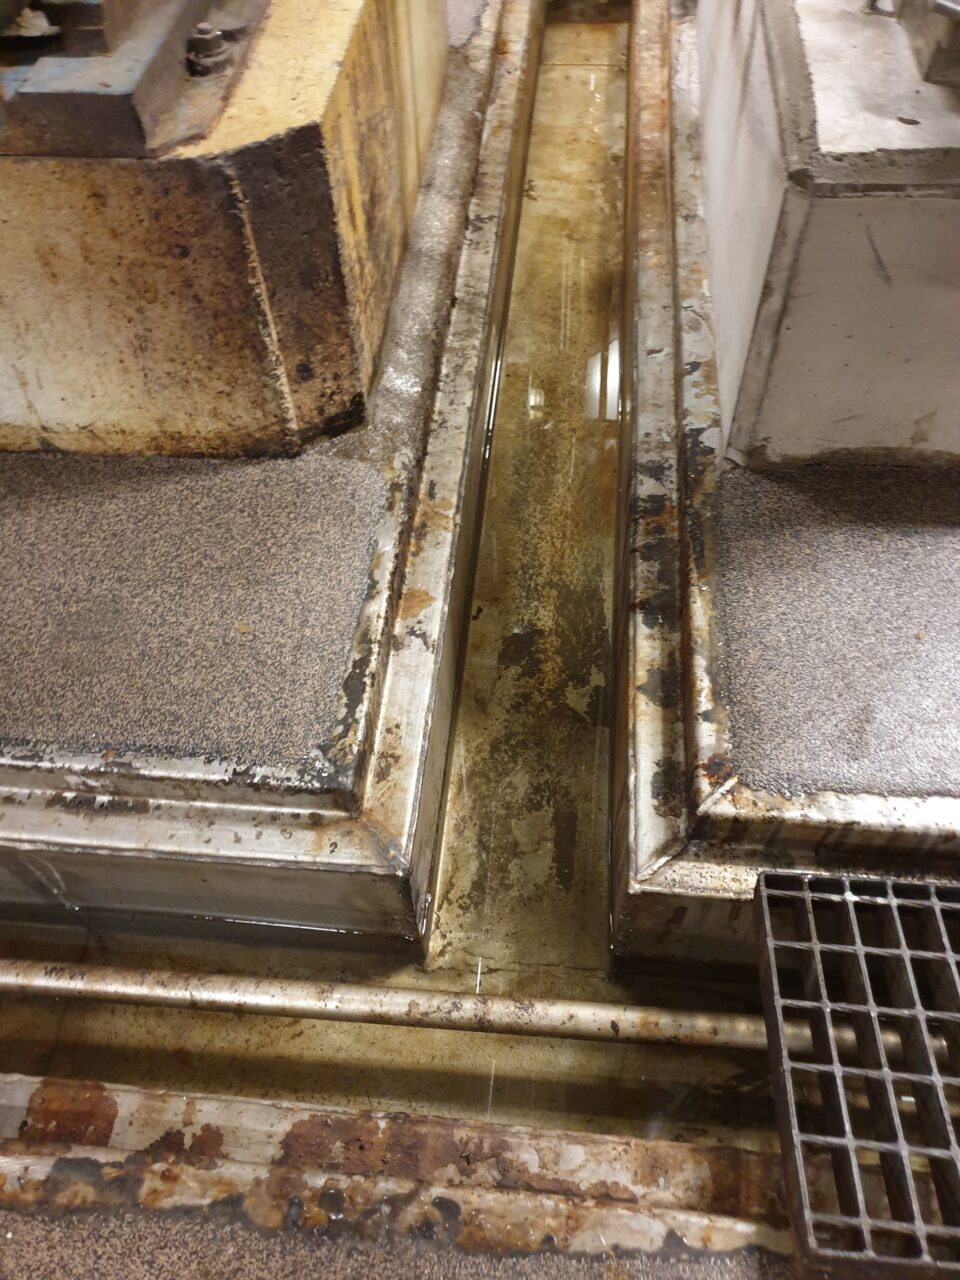 Corrosion protection system required for cracked weld seams in waste channel